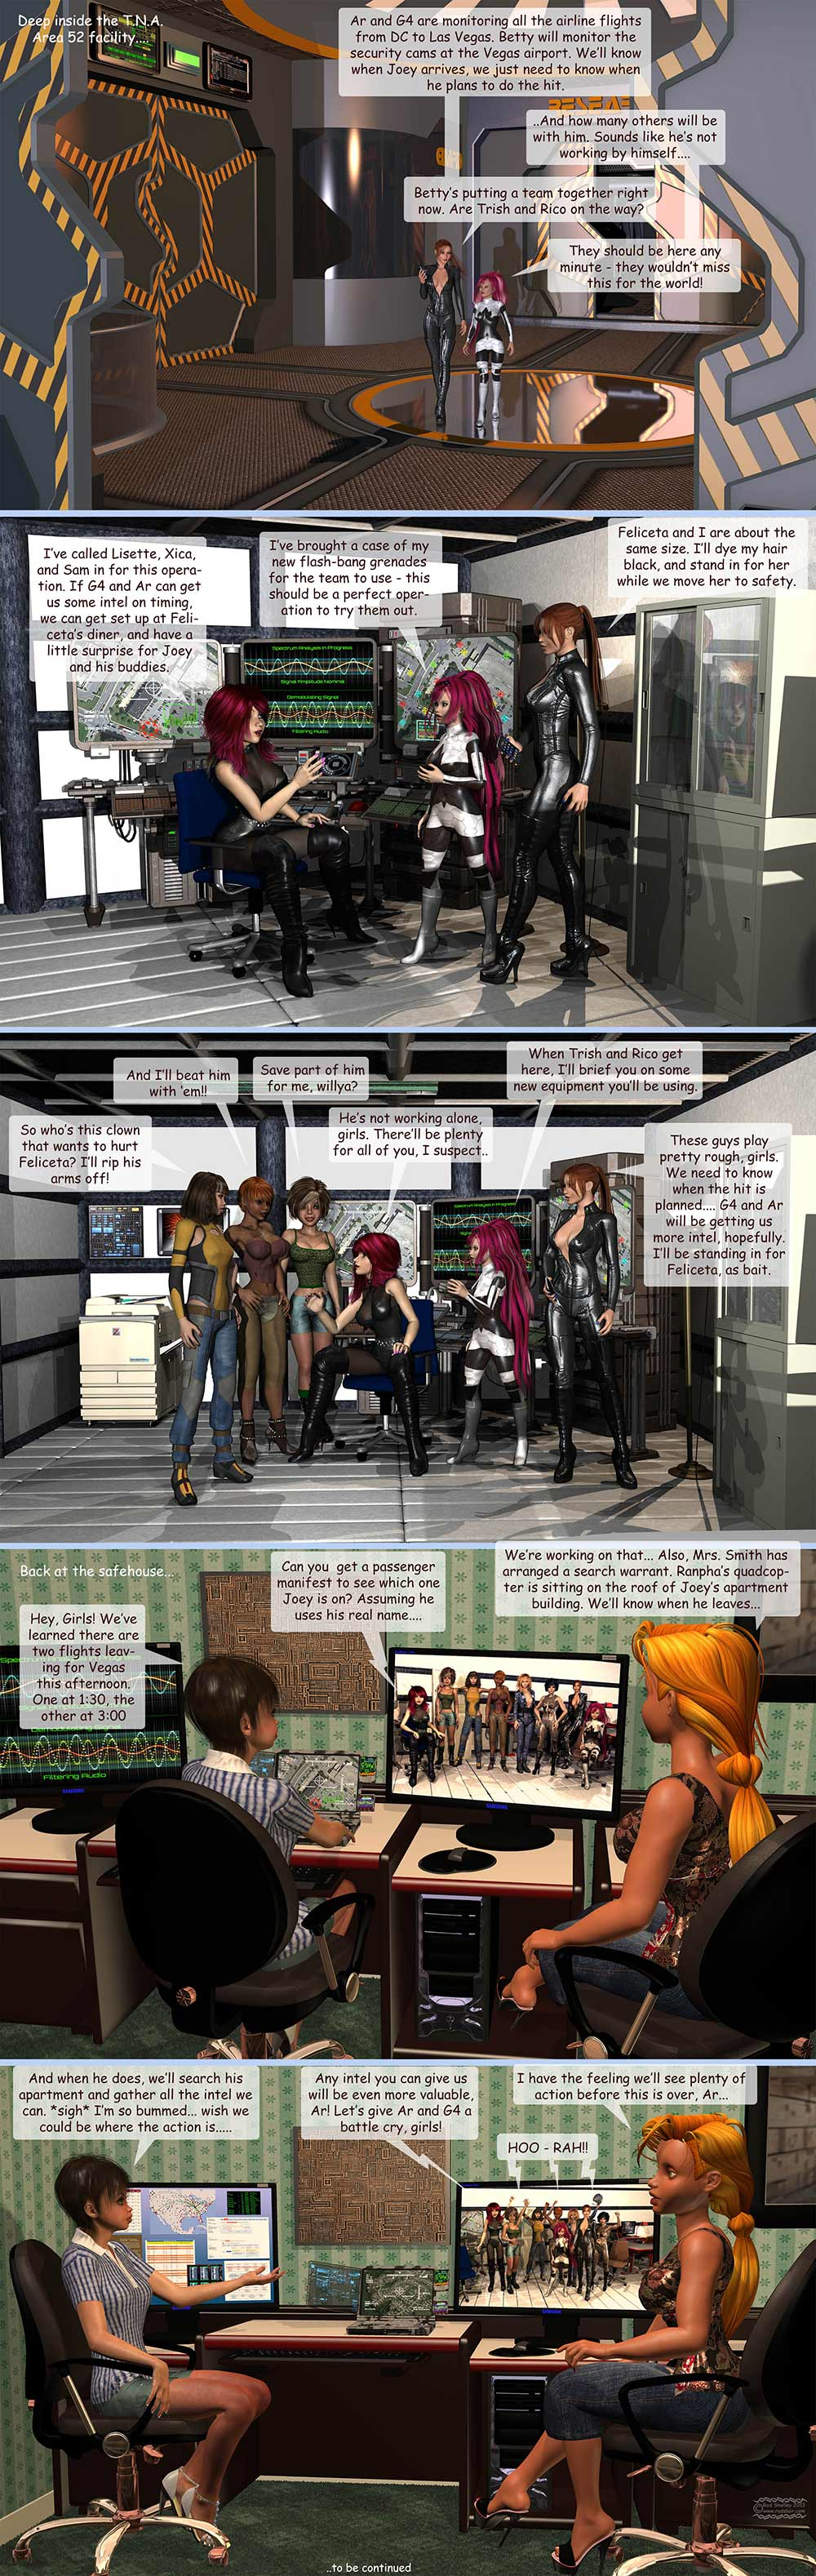 Girls From T.N.A: Brietlenger Jar Ch 4 Page 19